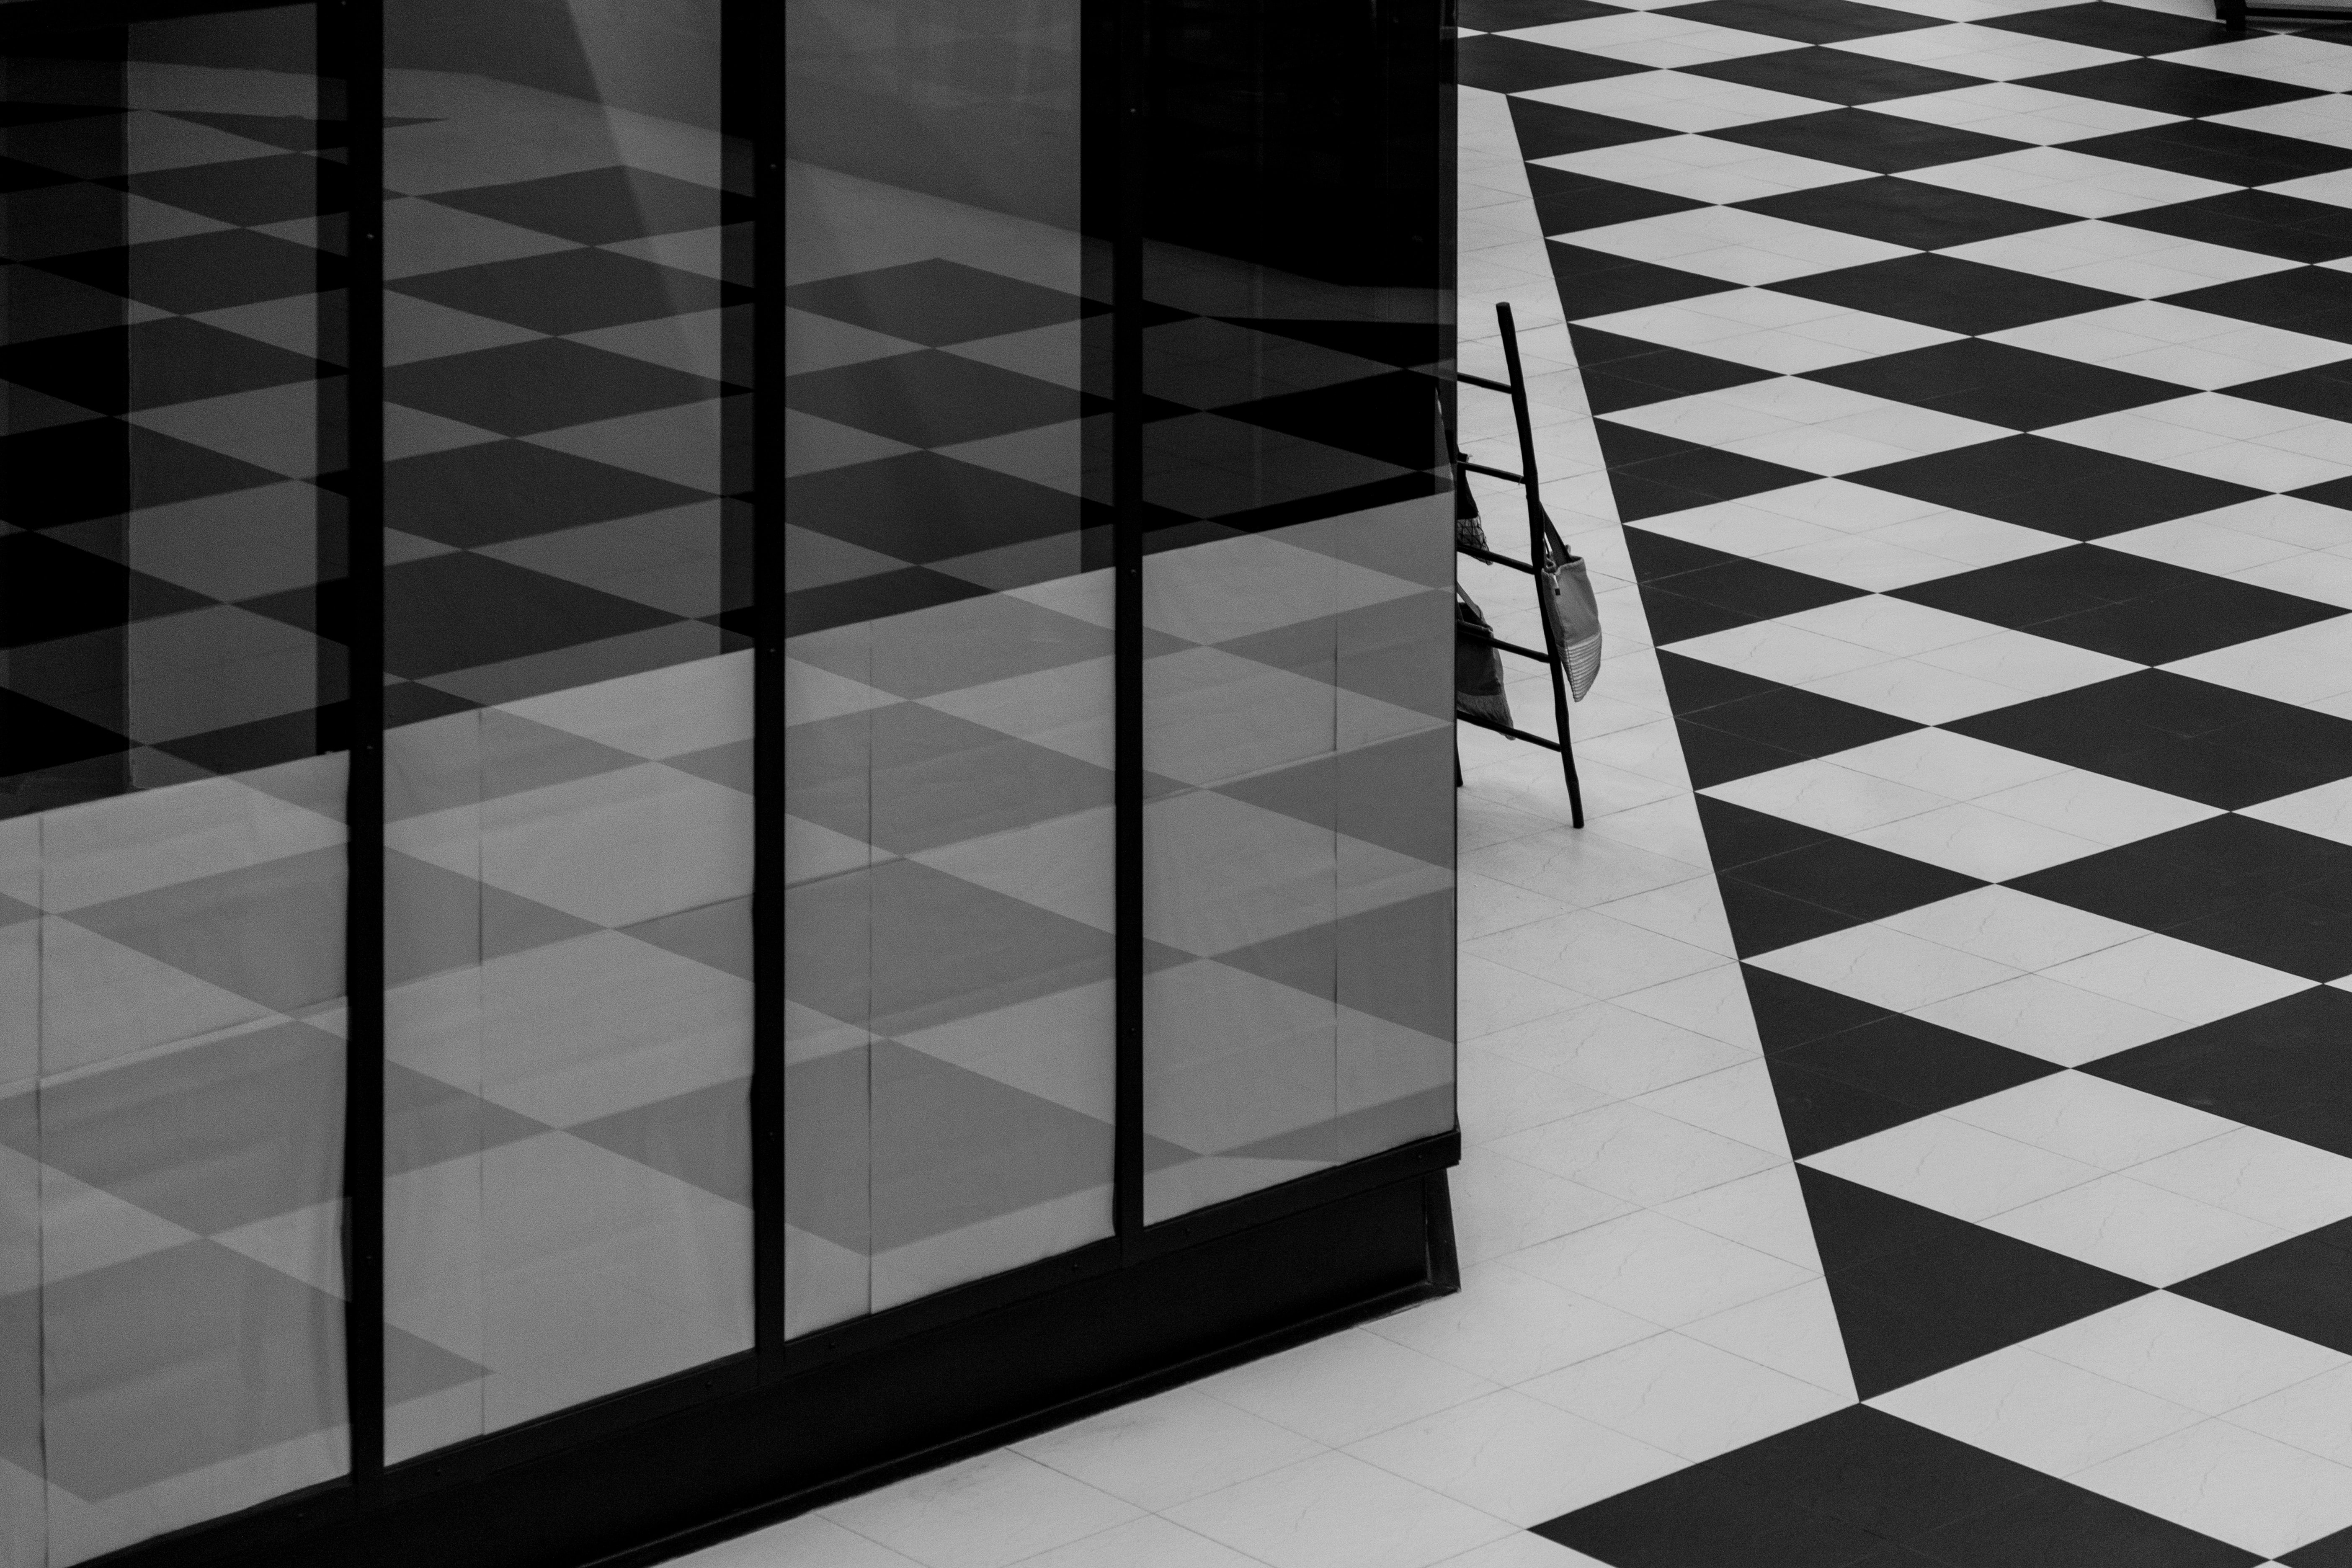 Black and white shot of monochrome square floor pattern and tall window with reflection